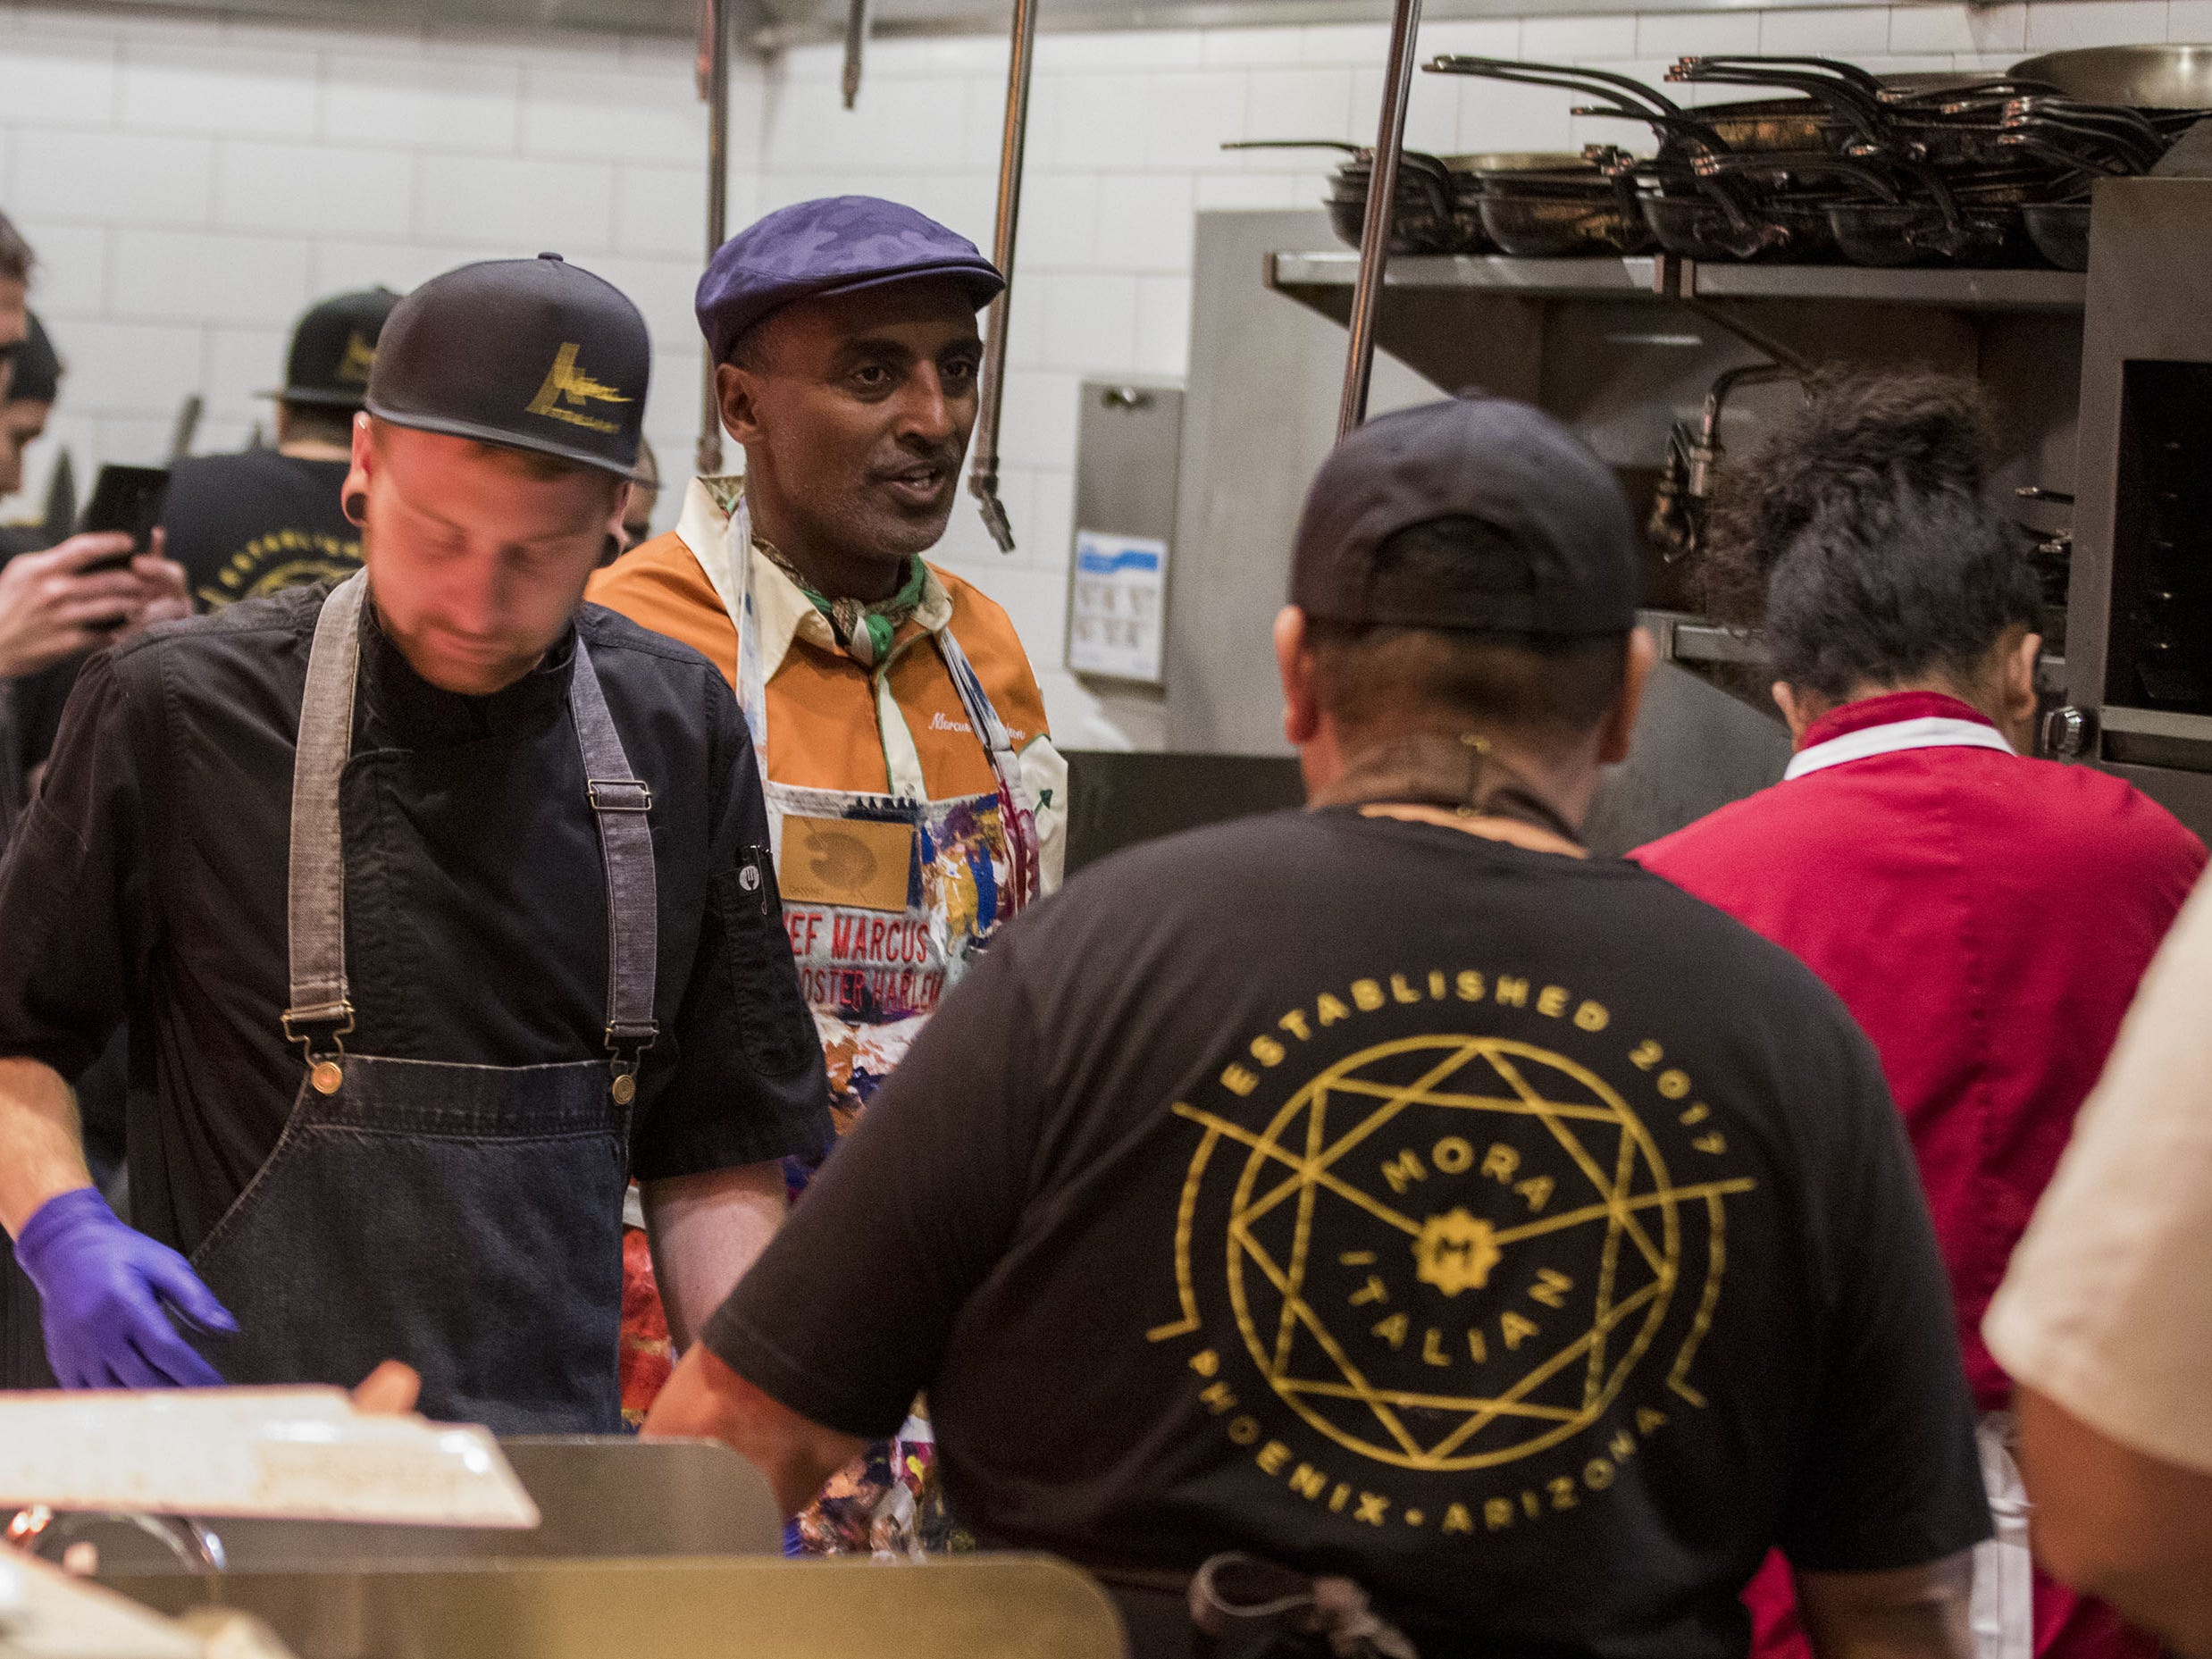 Chef Marcus Samuelsson keeps an eye on things in the kitchen during the exclusive kickoff dining event at Mora Italian for azcentral Wine & Food Experience.